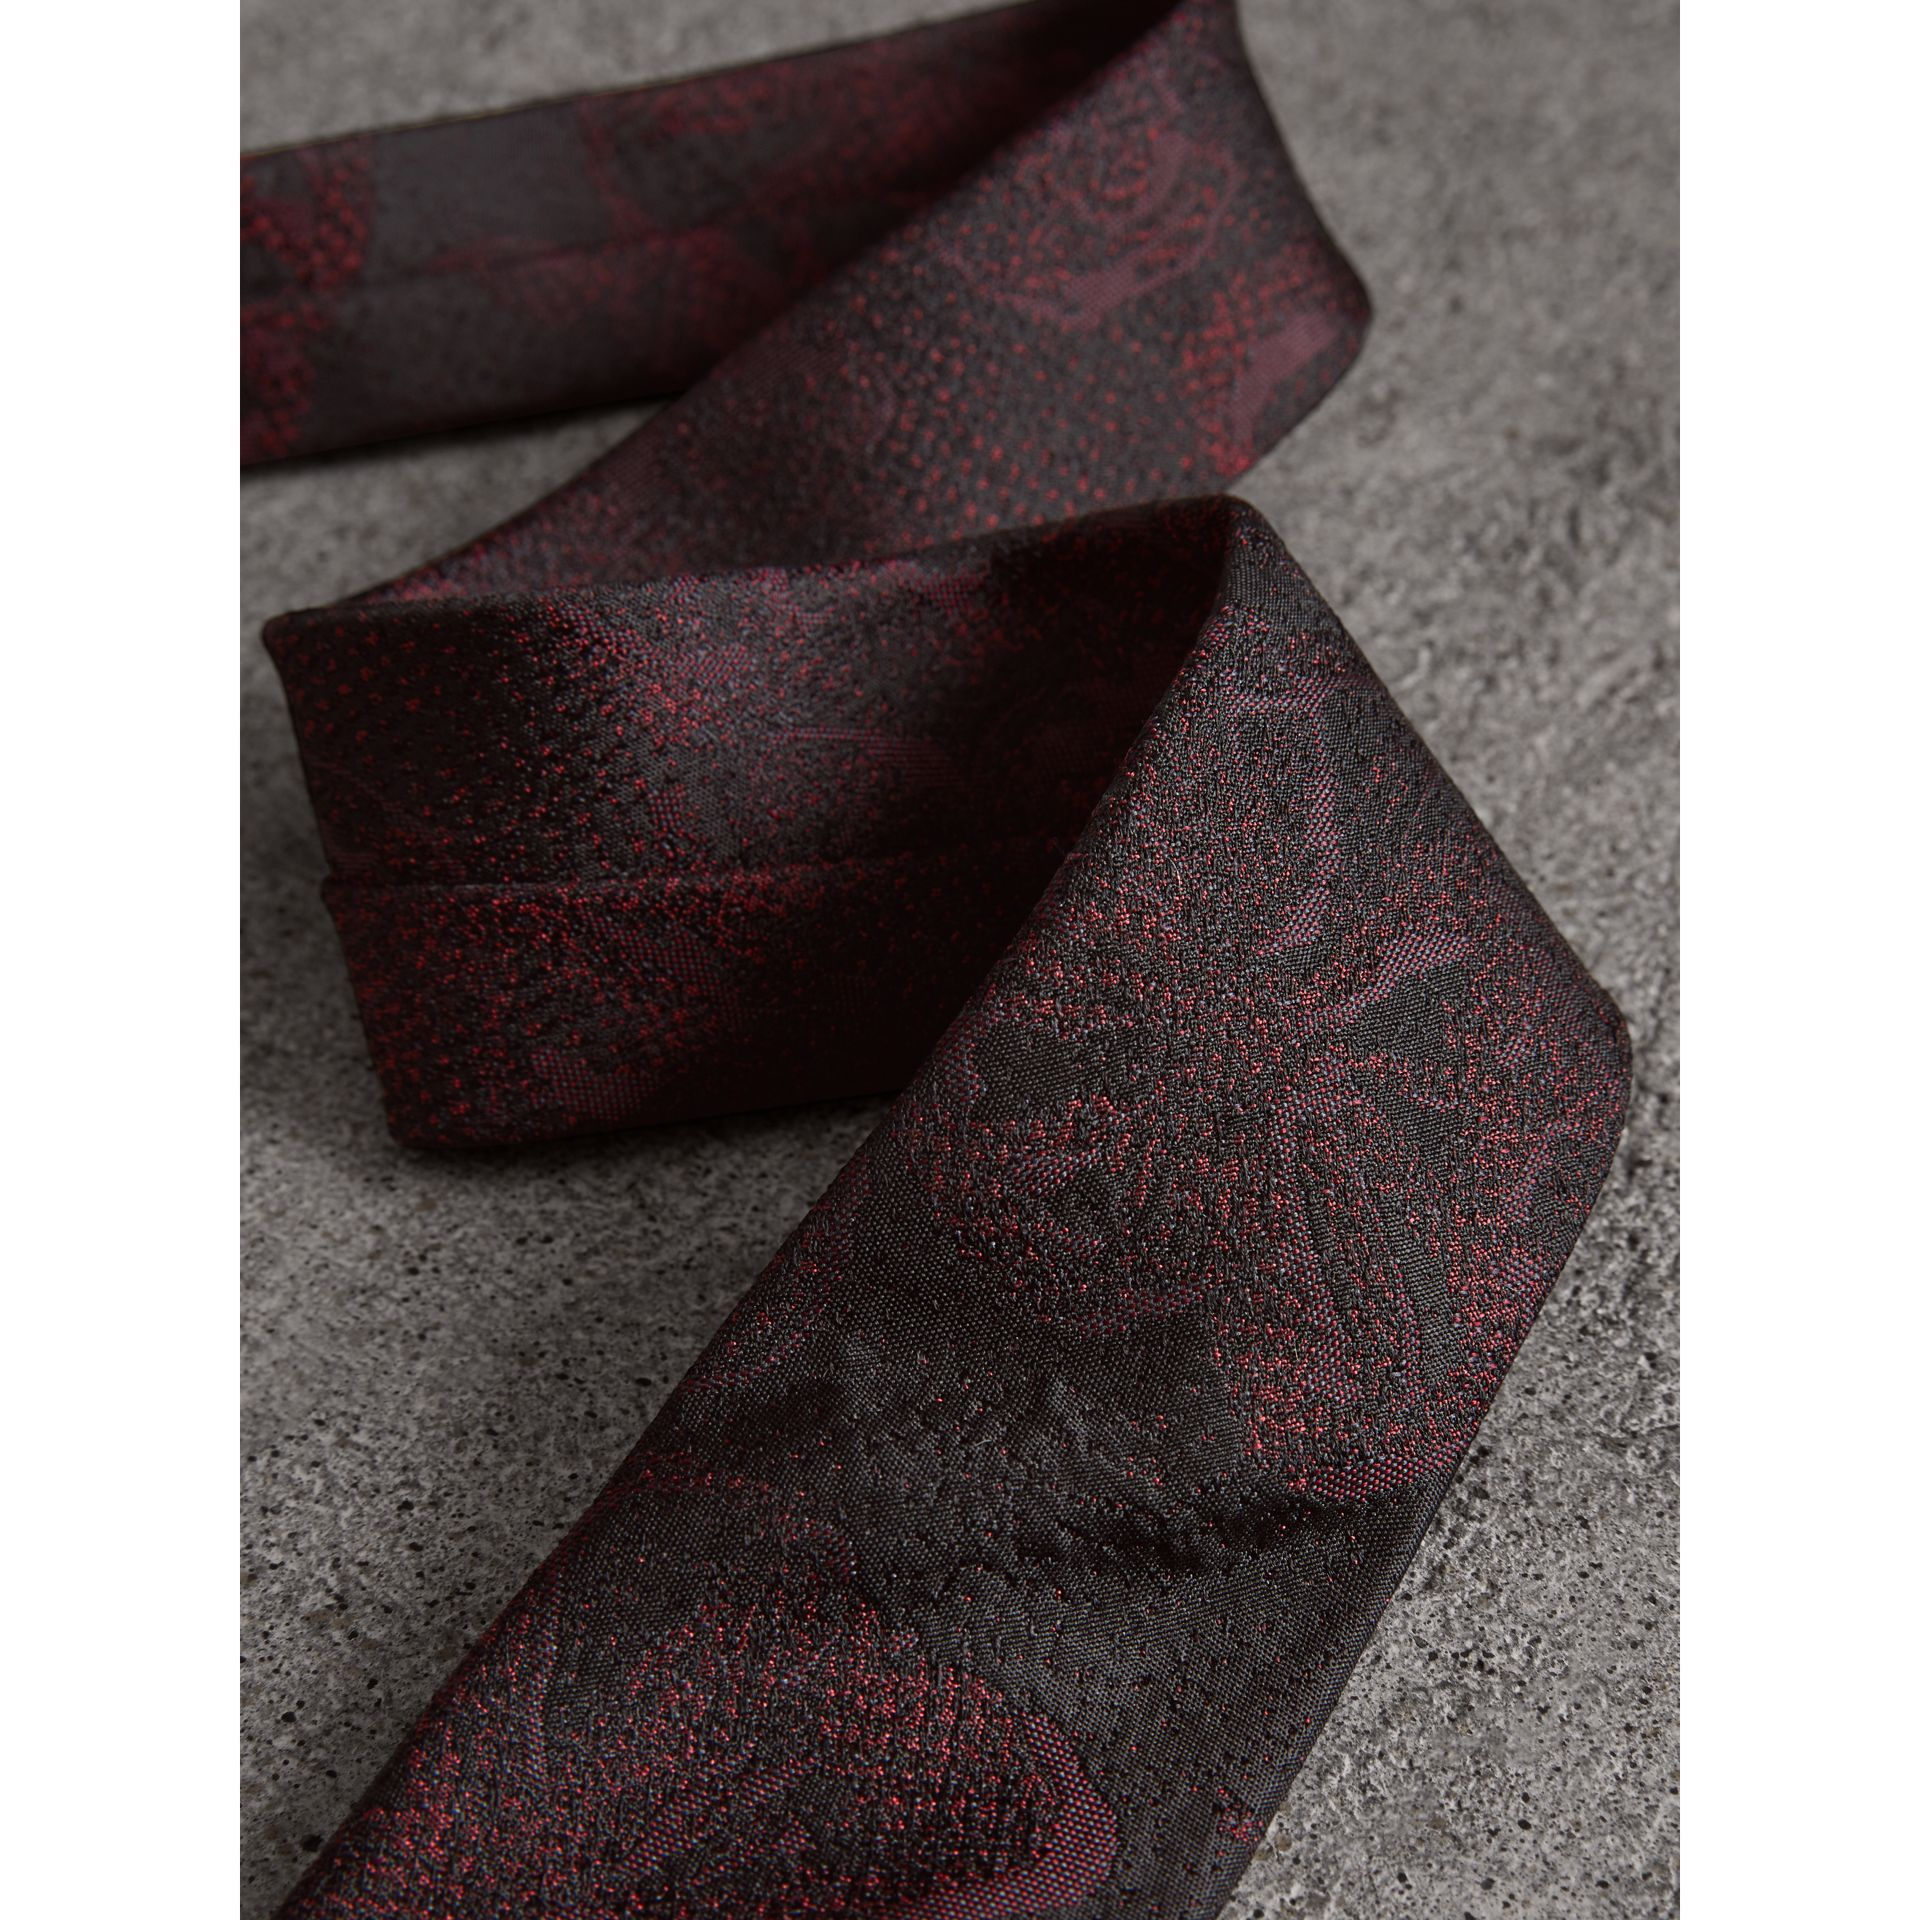 Slim Cut Floral Silk Jacquard Tie in Deep Claret - Men | Burberry United States - gallery image 1